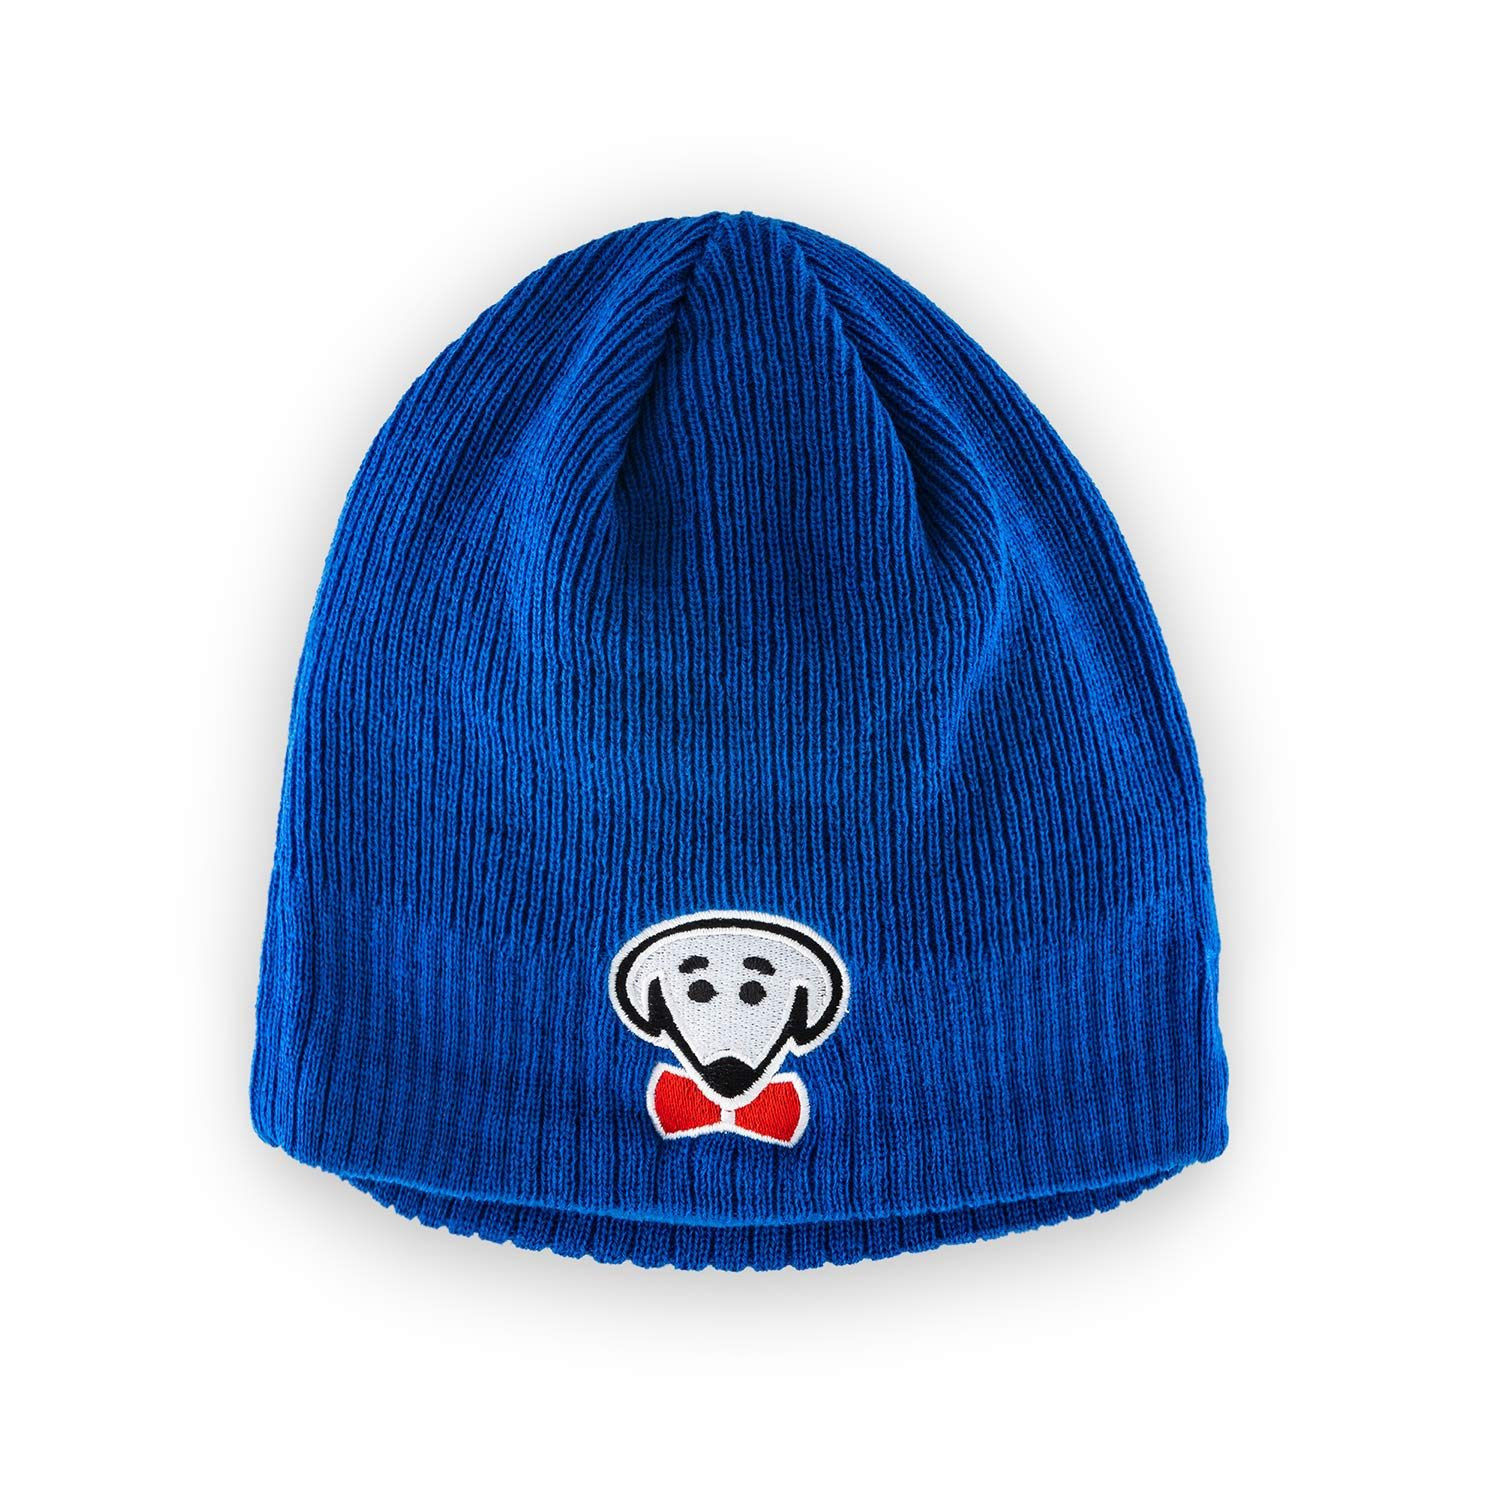 Taylor winter knit hat in royal blue by Beau Tyler